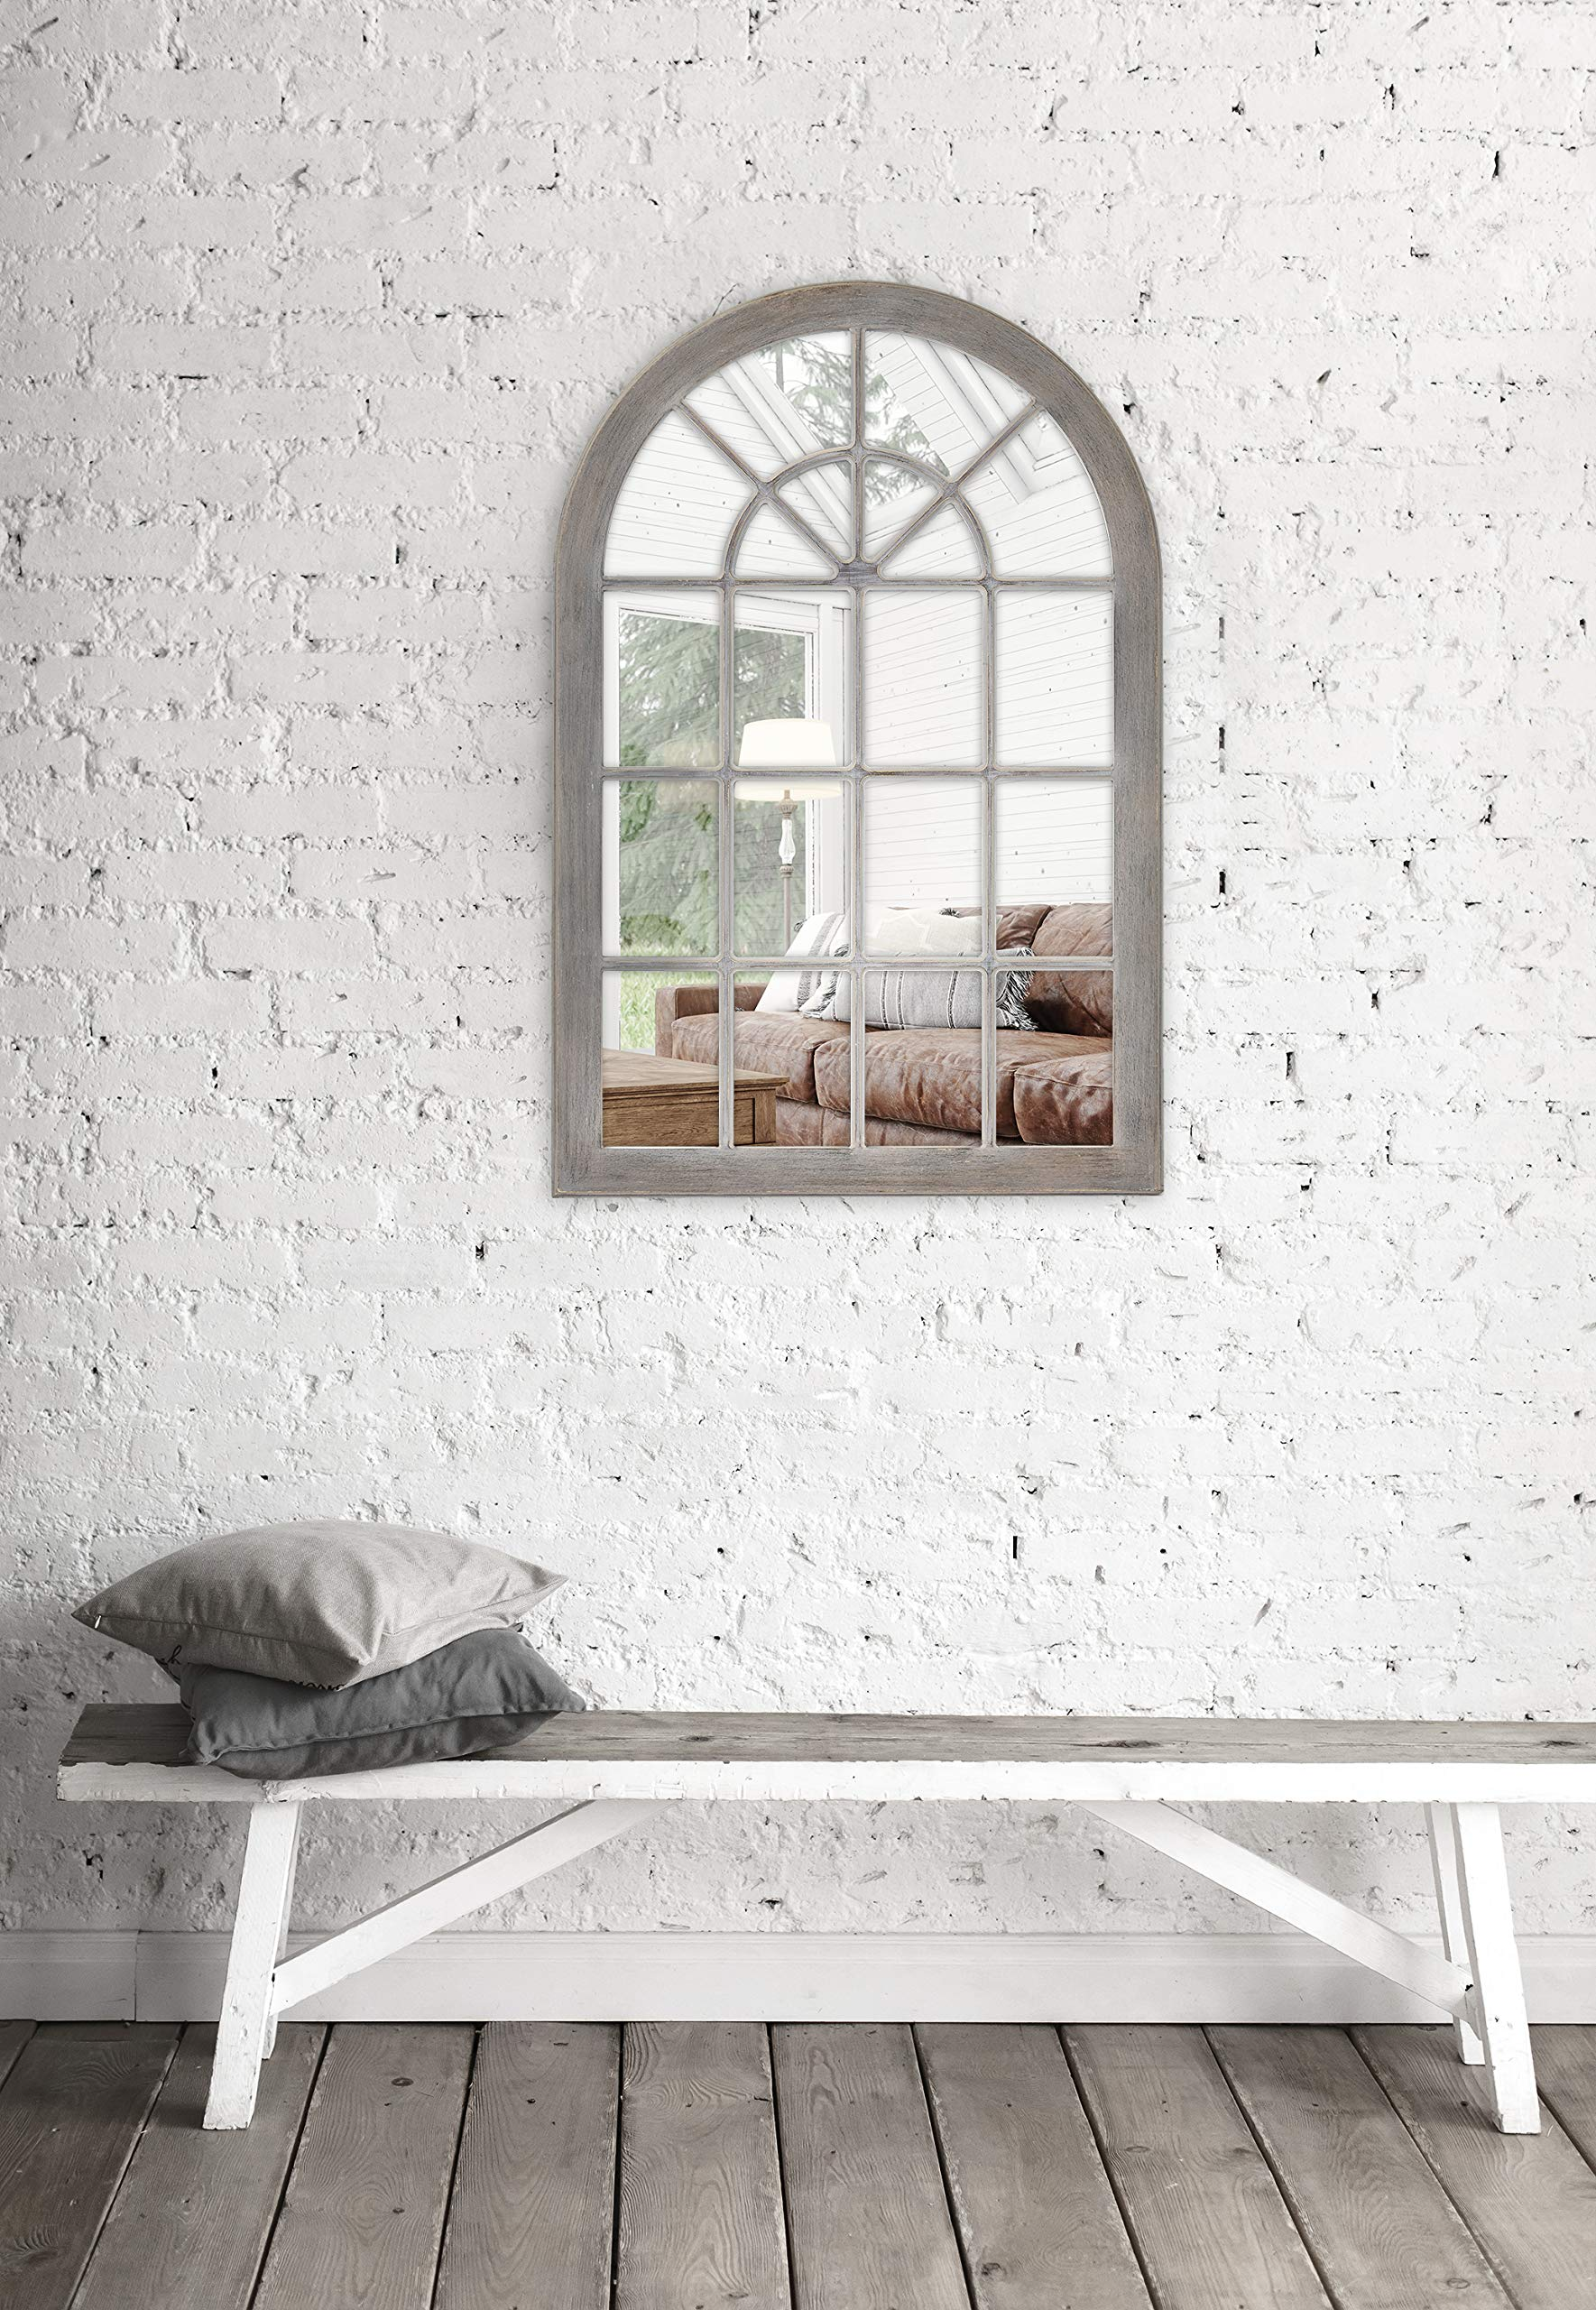 MCS 68874 Countryside Arched Windowpane Wall, Gray, 24x36 Inch Overall Size Mirror, by MCS (Image #3)